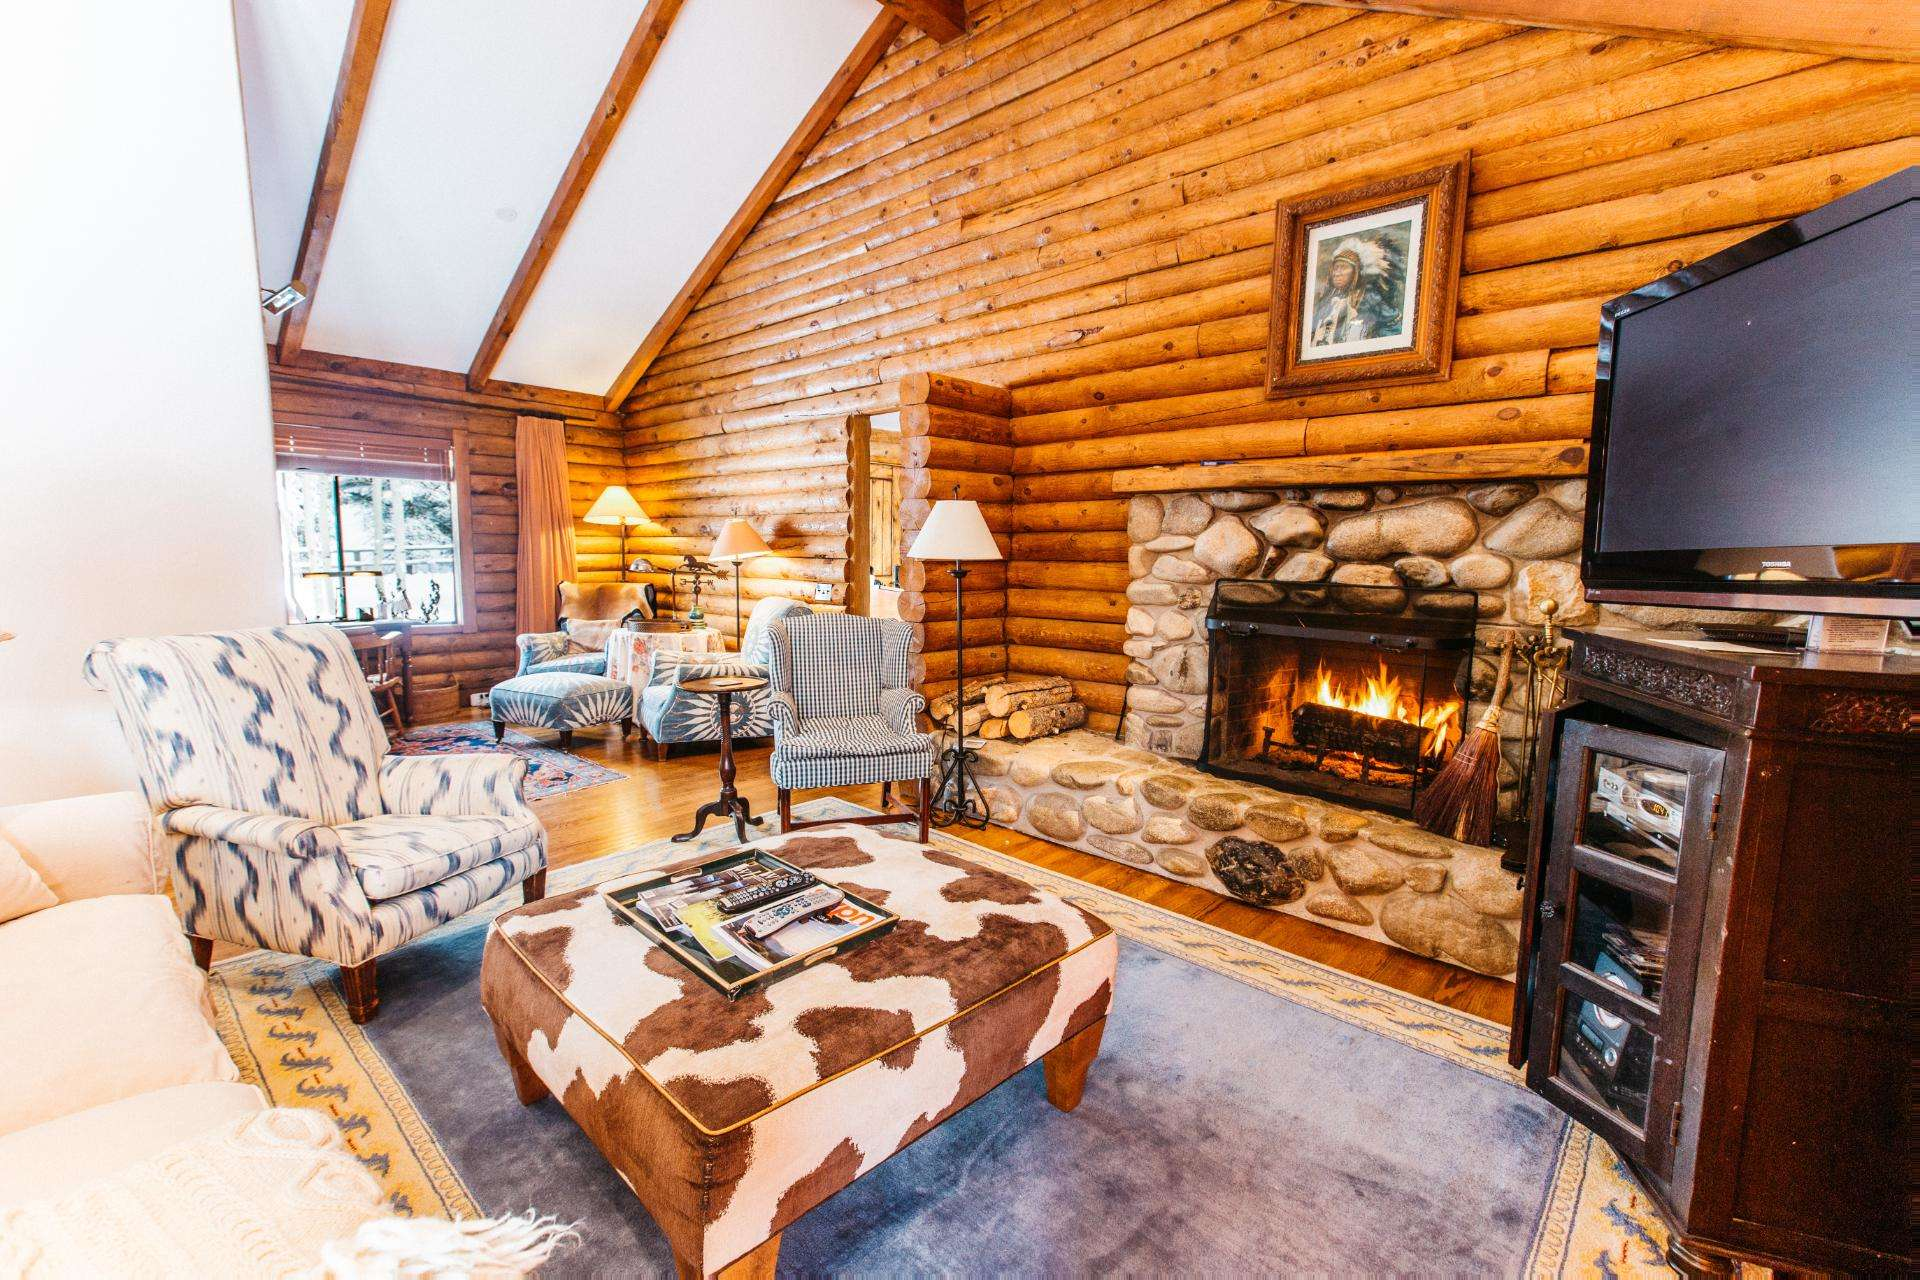 Luxury vacation rentals usa - Idaho - Sun valley - Ketchum  - Townsend Lodge - Image 1/17